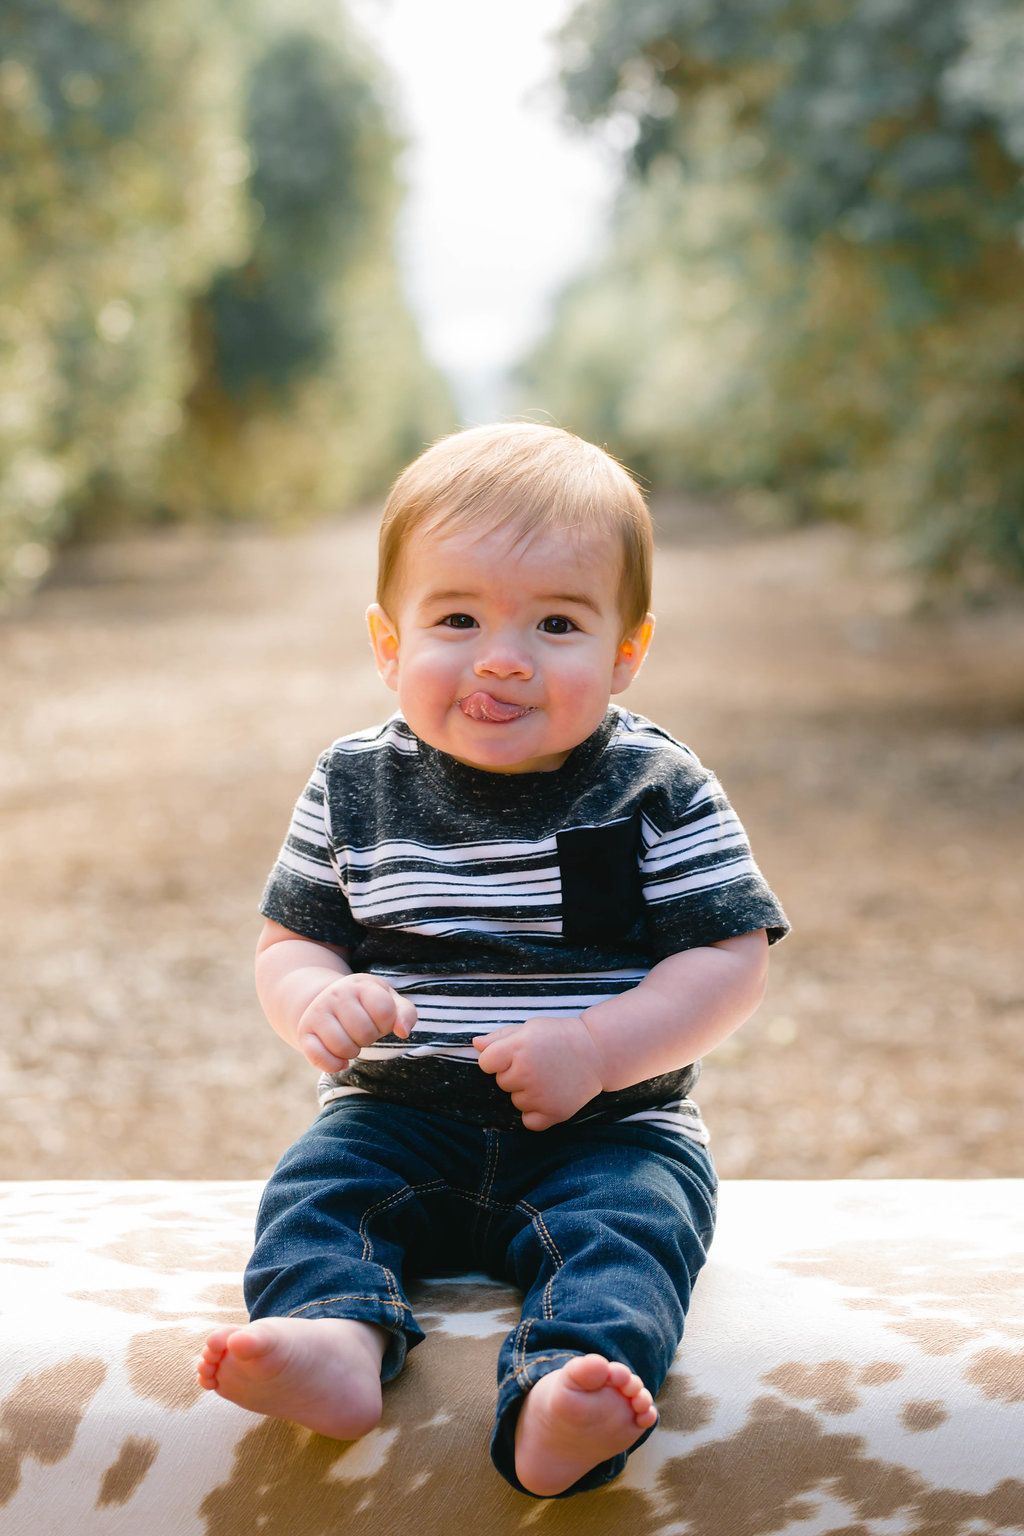 6 month photos by Megan Helm Photography